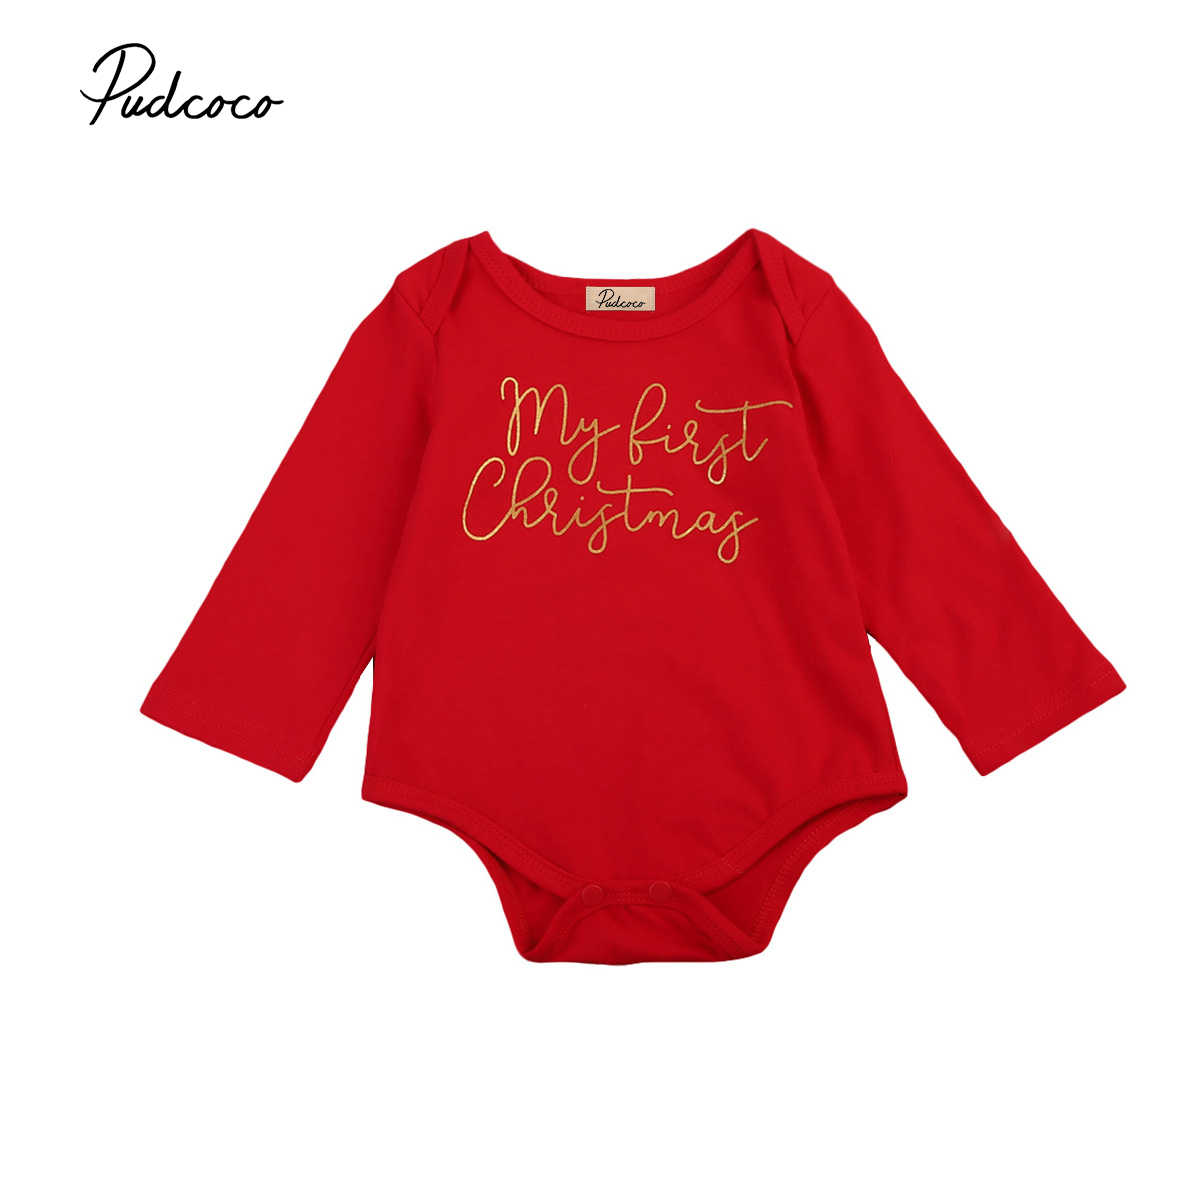 934a62411 Detail Feedback Questions about Infant Newborn Baby Boy Girl ...